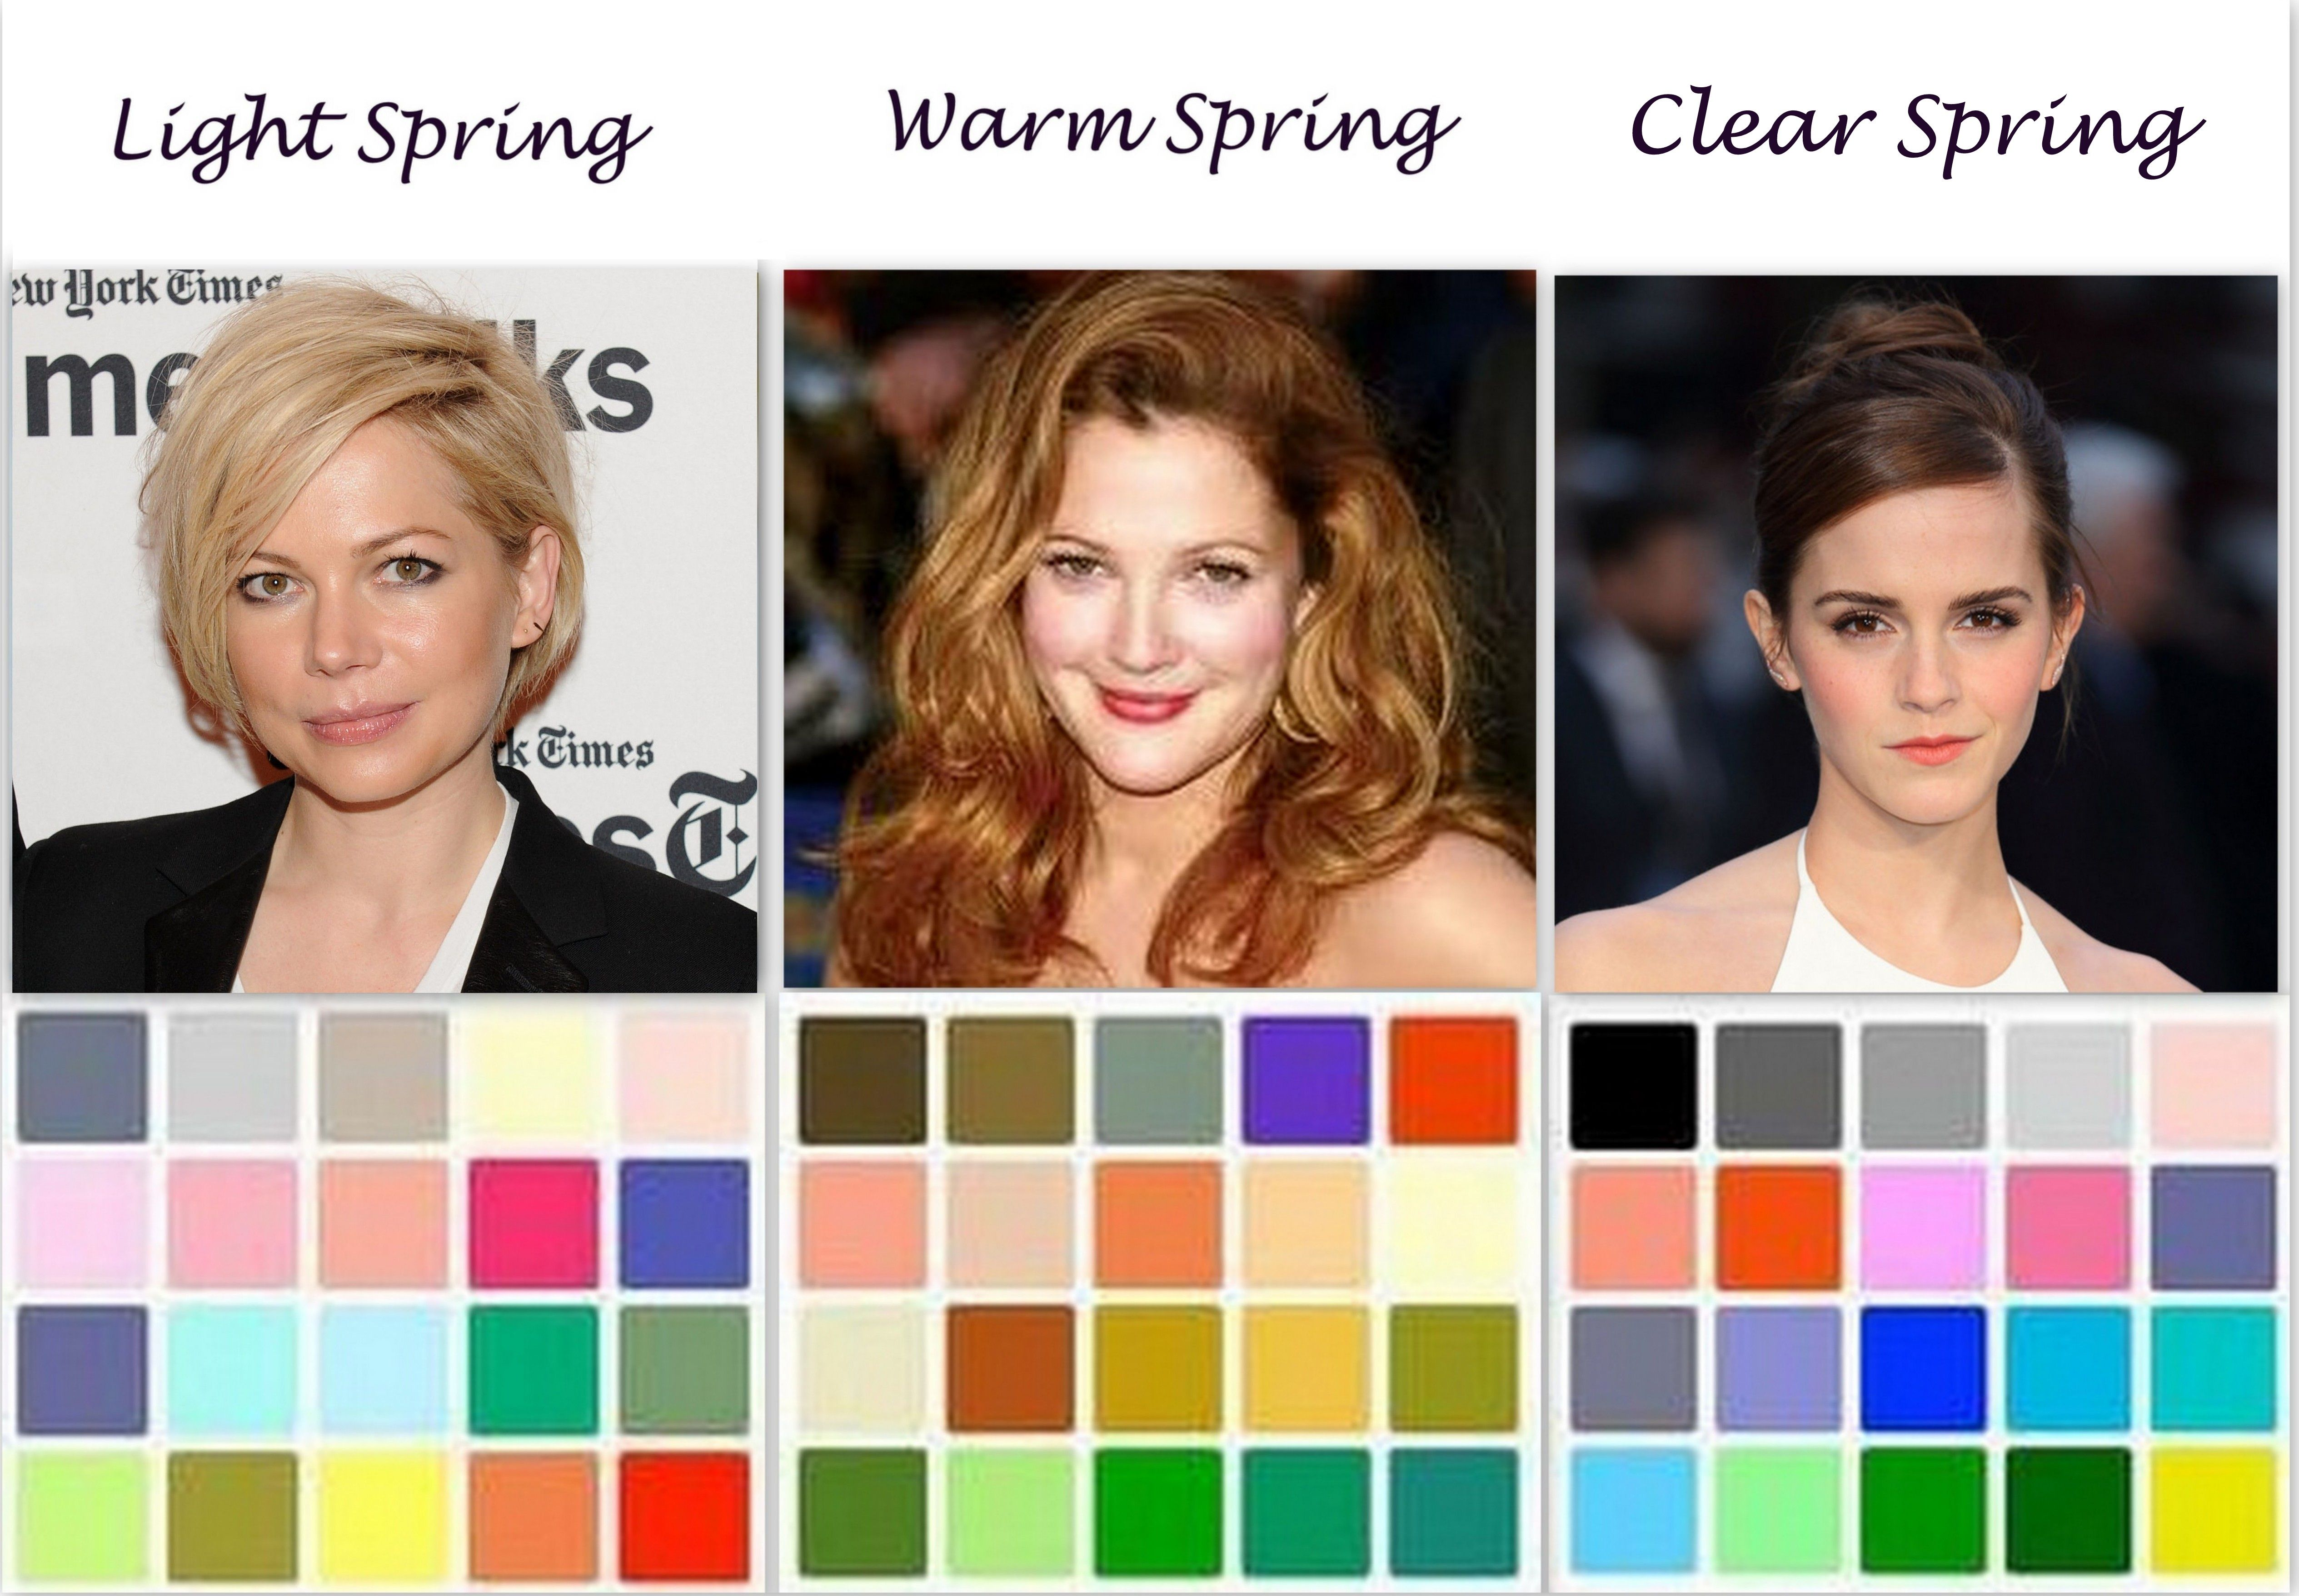 Typ Kolorystyczny Wiosna Jasna Ciepla Czysta The Style Factory Light Spring Colors Clear Spring Spring Color Palette